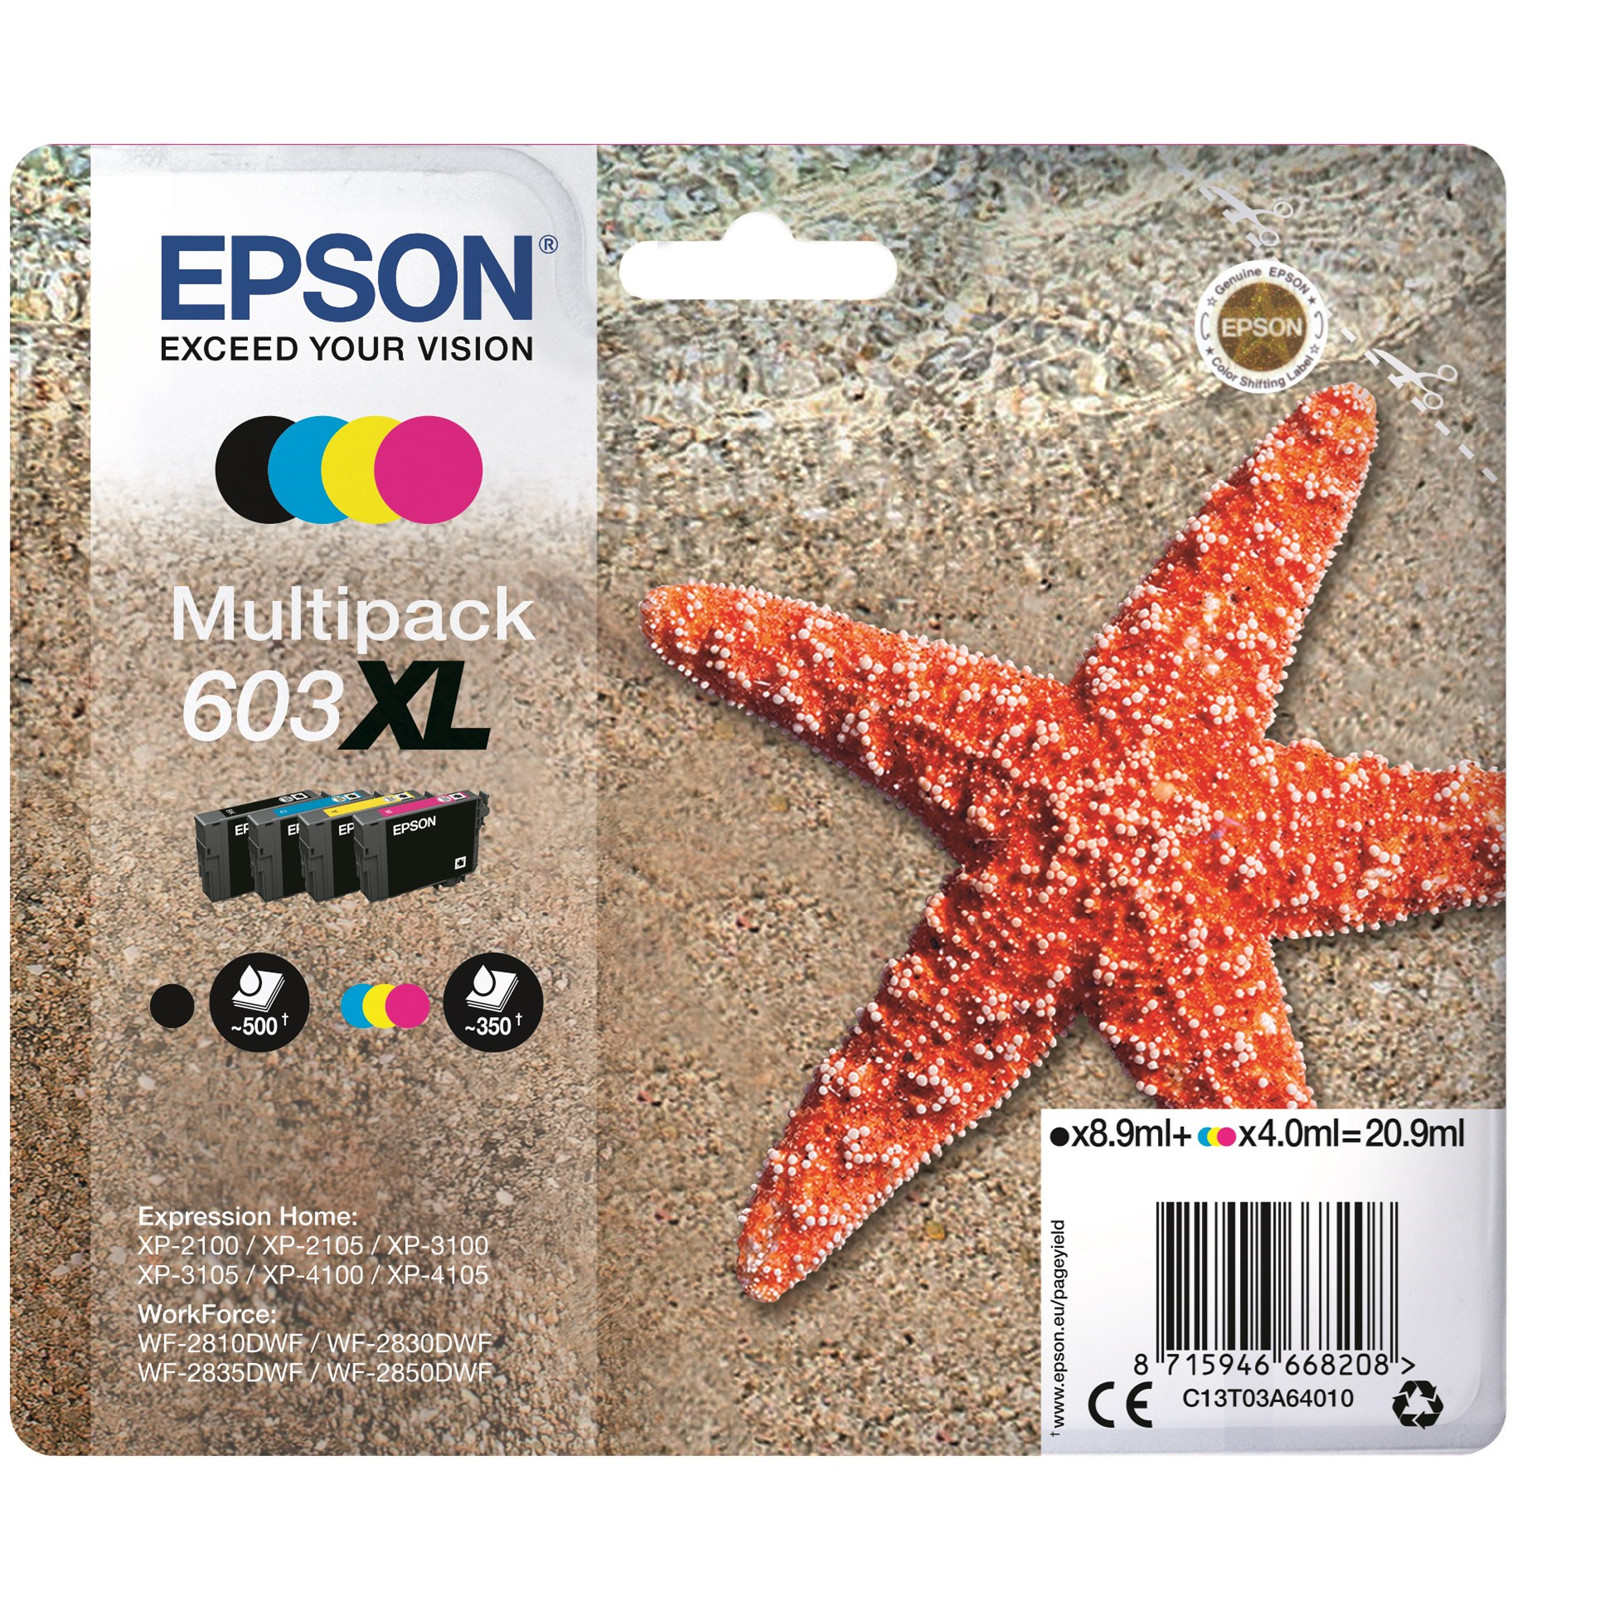 Epson T03U Multipack 4-colours 603XL Ink Cartridge